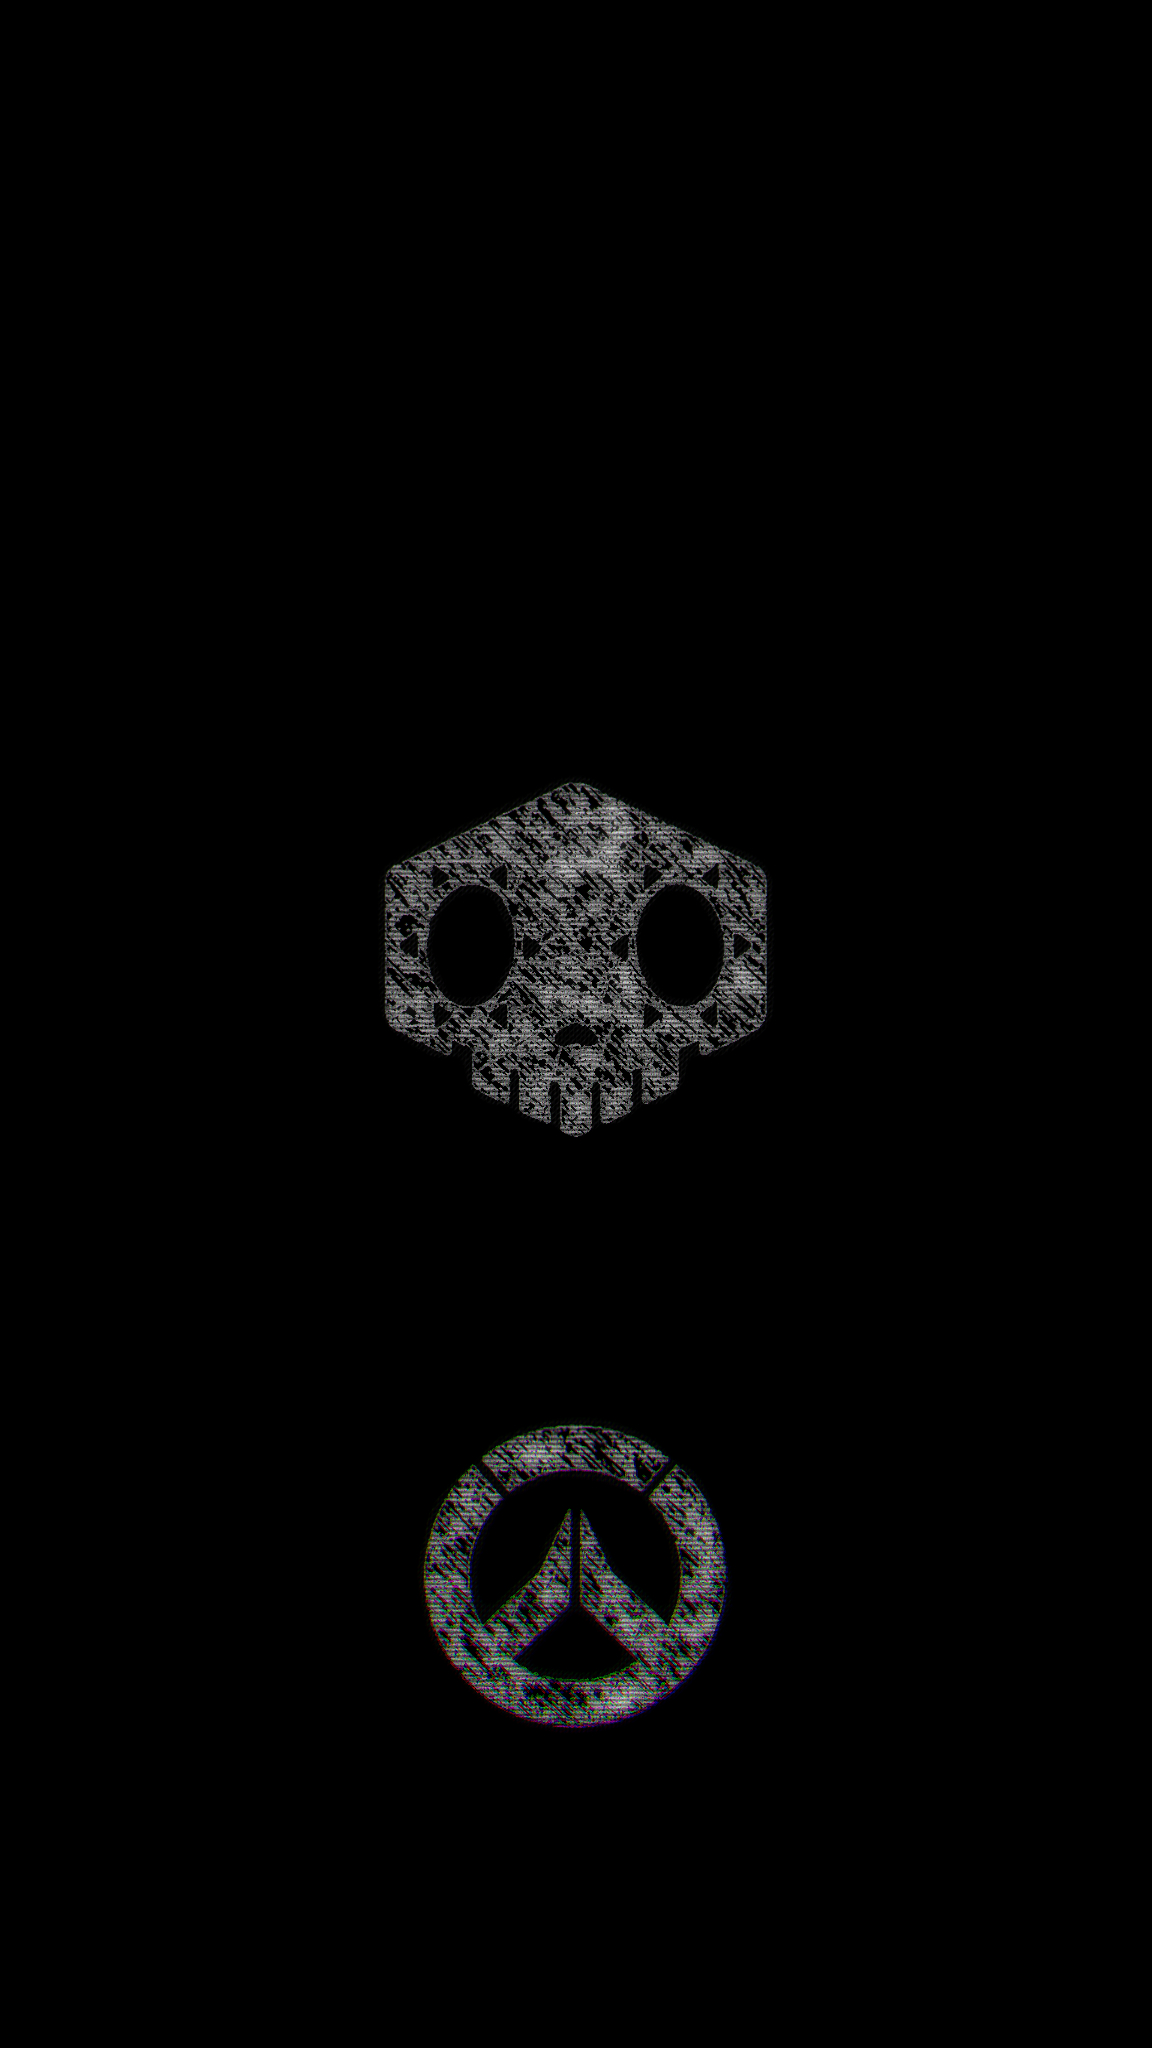 Sombra Logo Wallpaper High Definition Is Cool Wallpapers